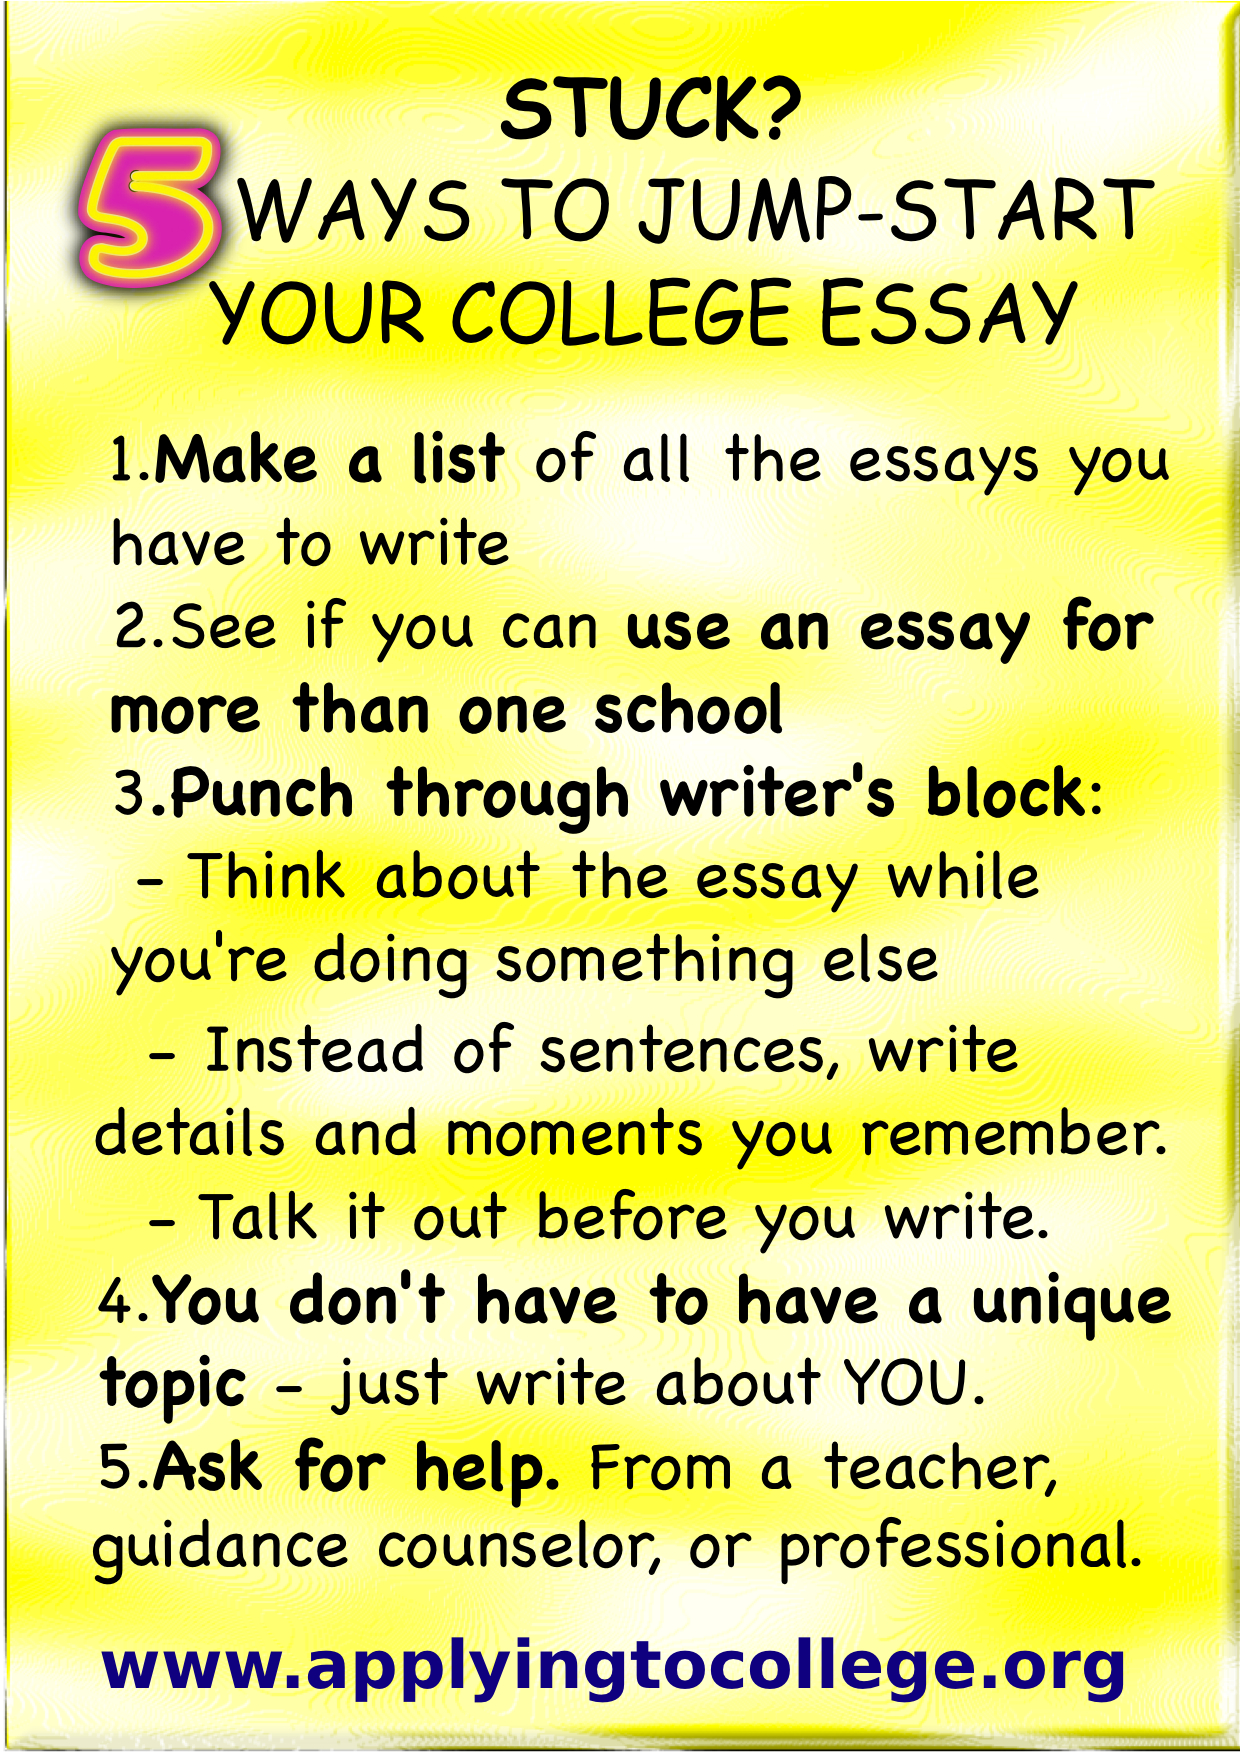 001 Essay Example Ways To Reduce Stress Tips For Writing College Application Fantastic Essays Best Full